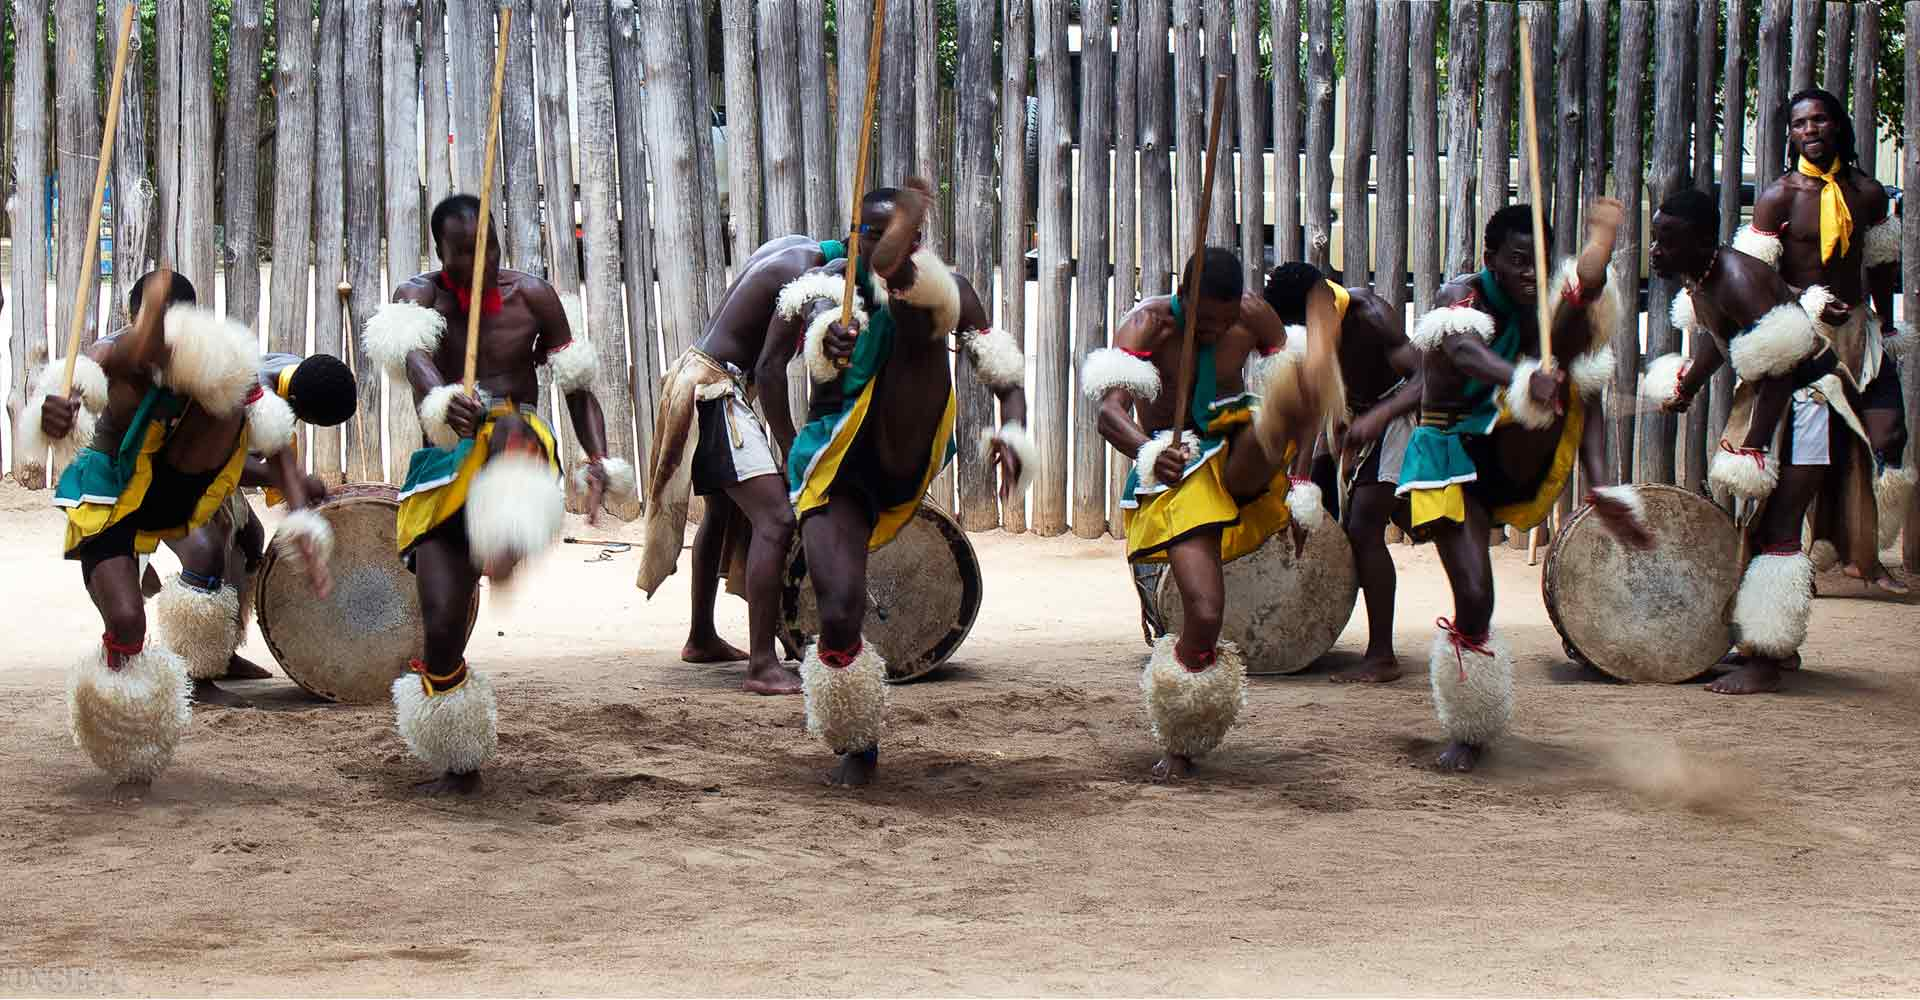 Swaziland cultural tour by mabeco tours from Maputo